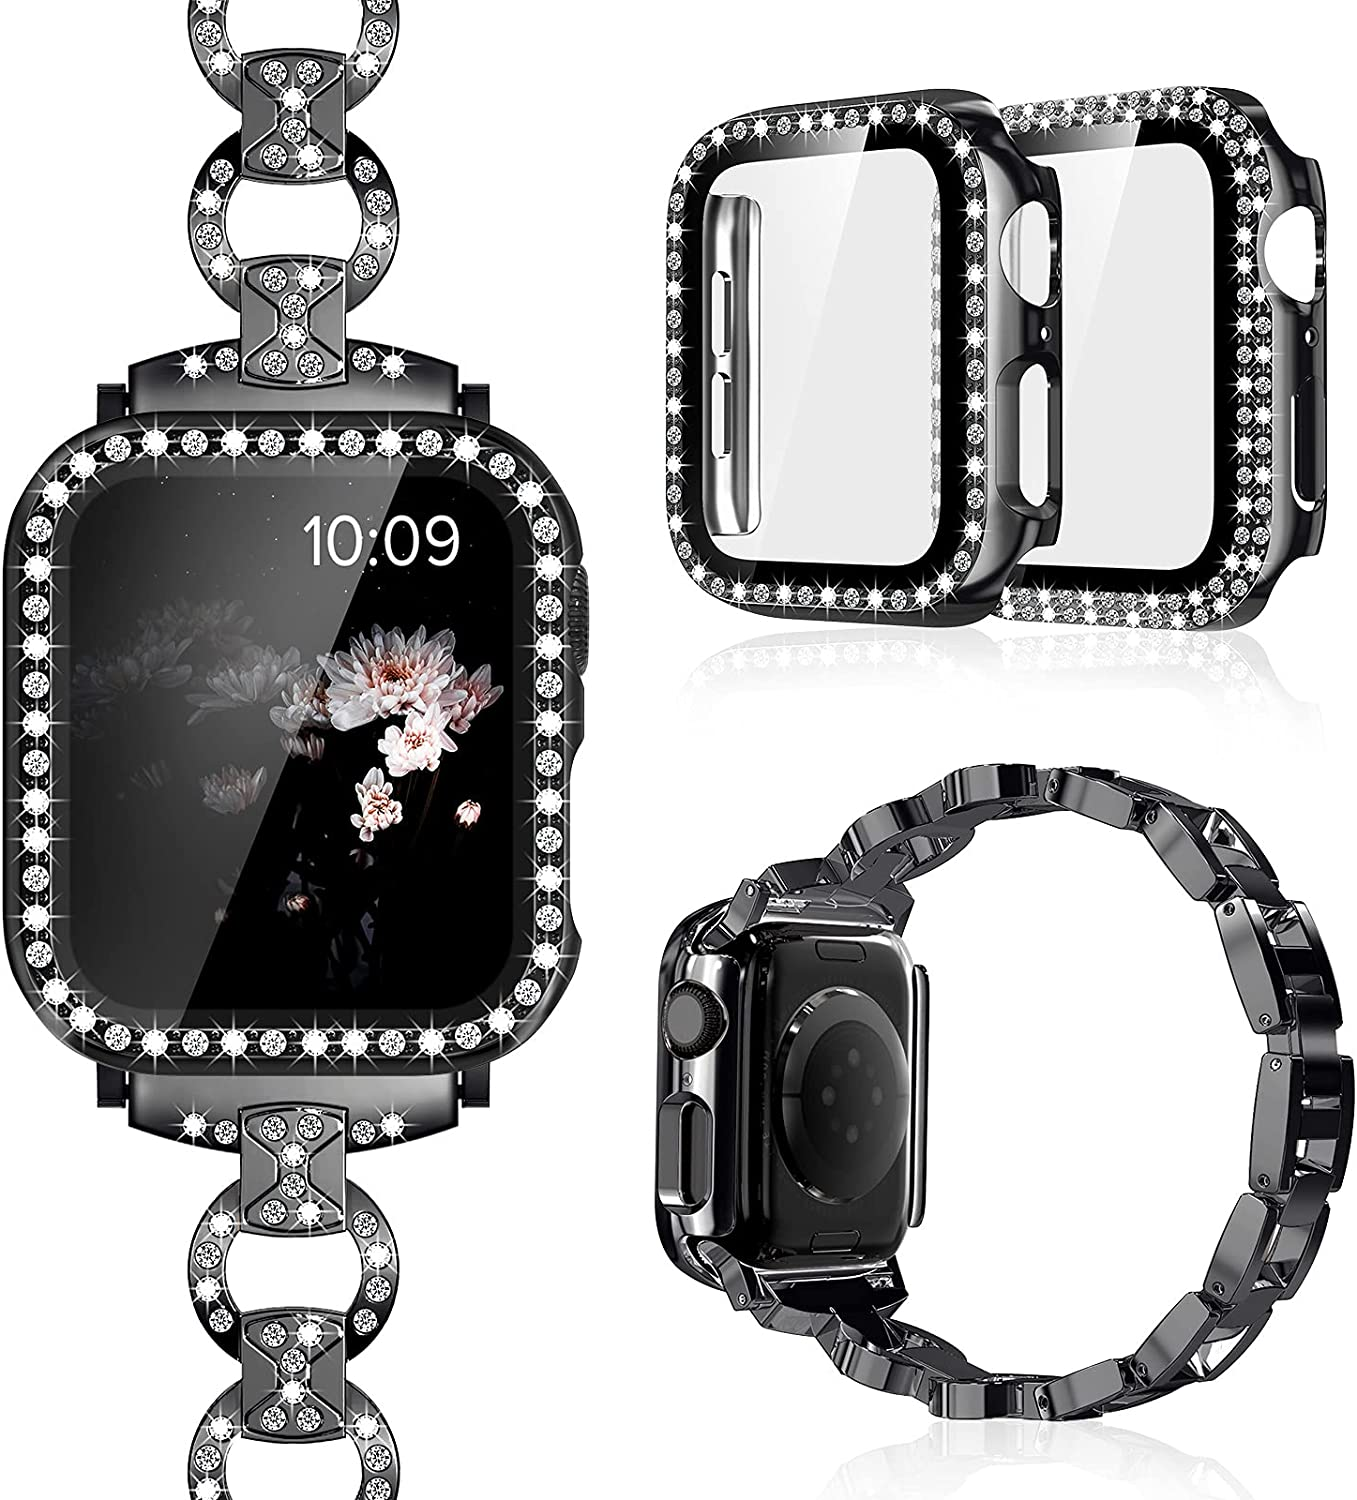 Invoibler Compatible with Apple Watch Band 40mm 44mm with Rhinestone Protective Cover, Women Girls Jewelry Replacement Metal Wristband Strap with 2PCS Bling Diamond PC Protective Case for iWatch Series 6/5/4